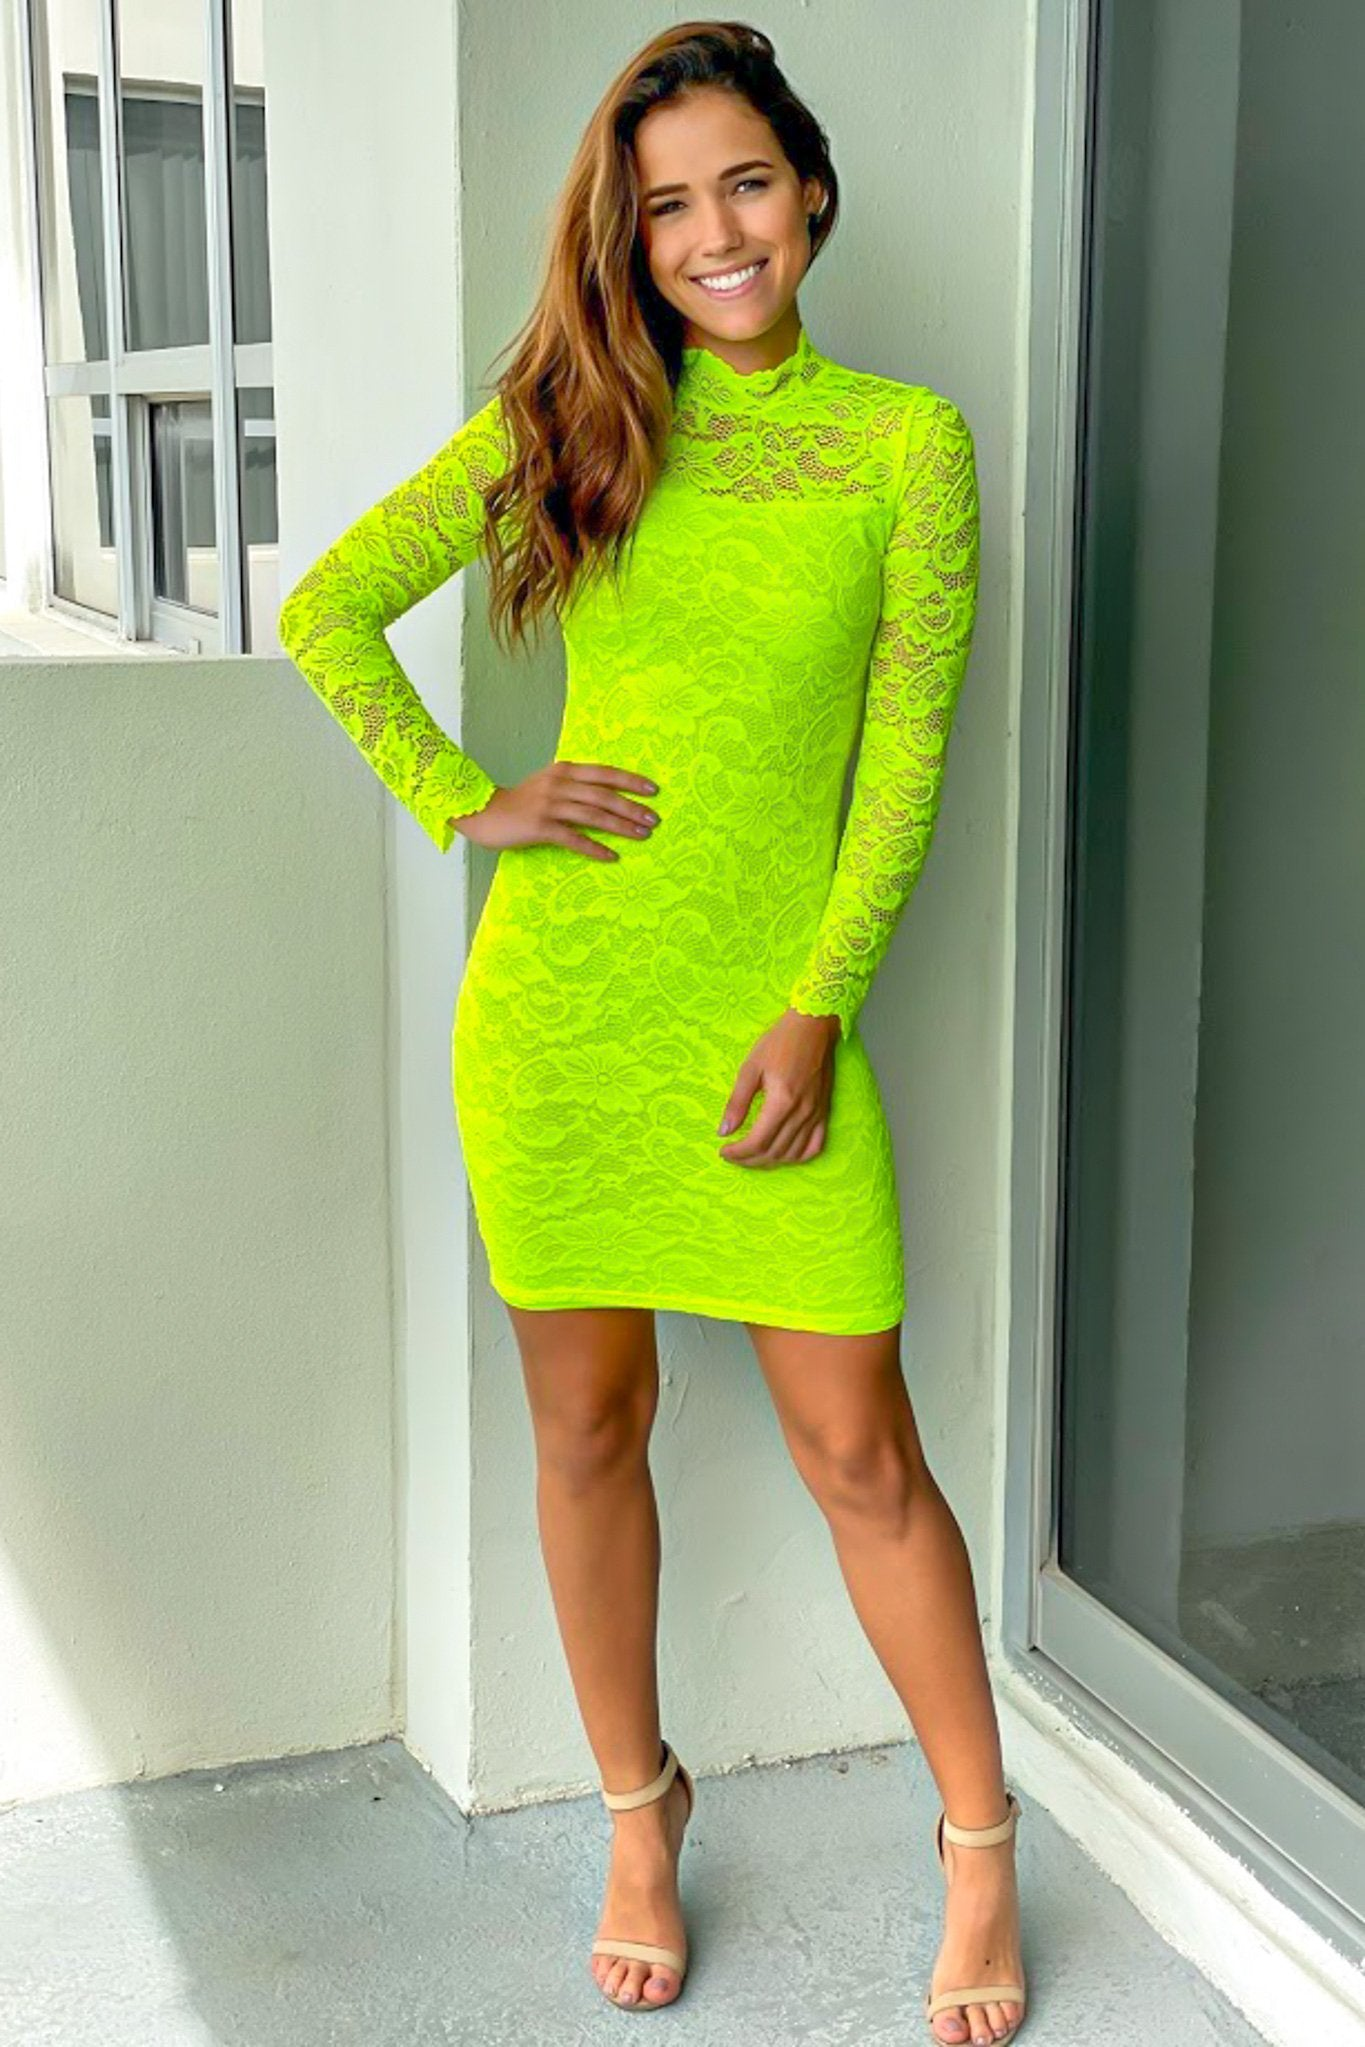 Neon Lime Laced Short Dress with 3/4 Sleeves